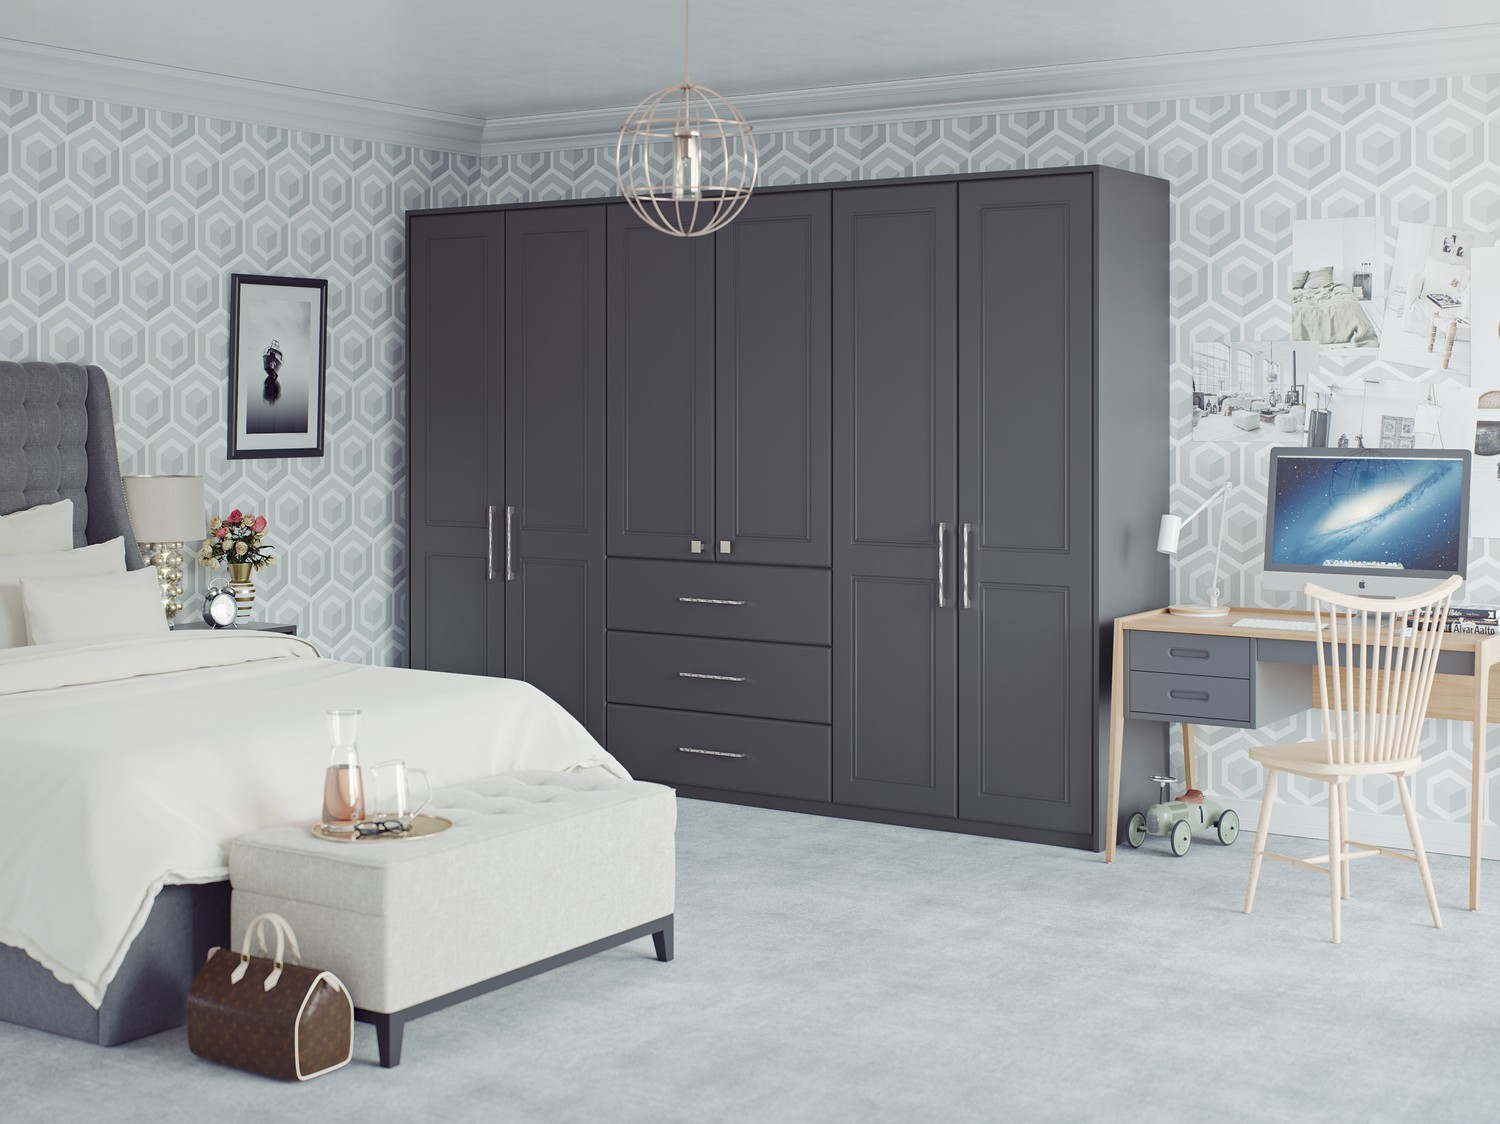 miniature furniture cardboardwood routers. White And Grey Bedroom Furniture. Matt Graphite Fitted Wardrobes For Our Client In Heswall, Miniature Furniture Cardboardwood Routers